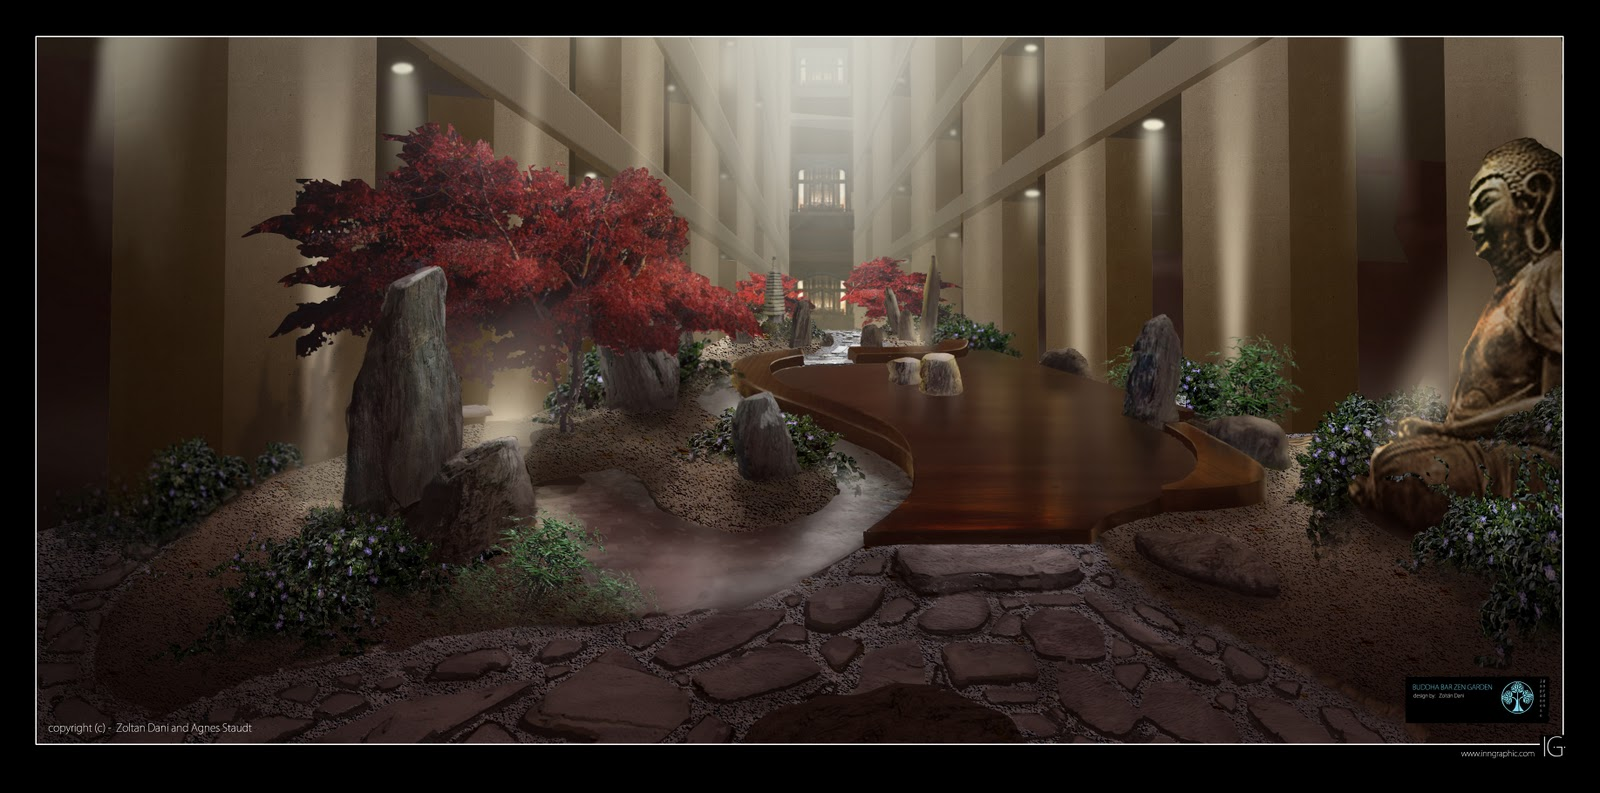 Zen garden design layout photograph buddha bar interior ze for Interior zen garden